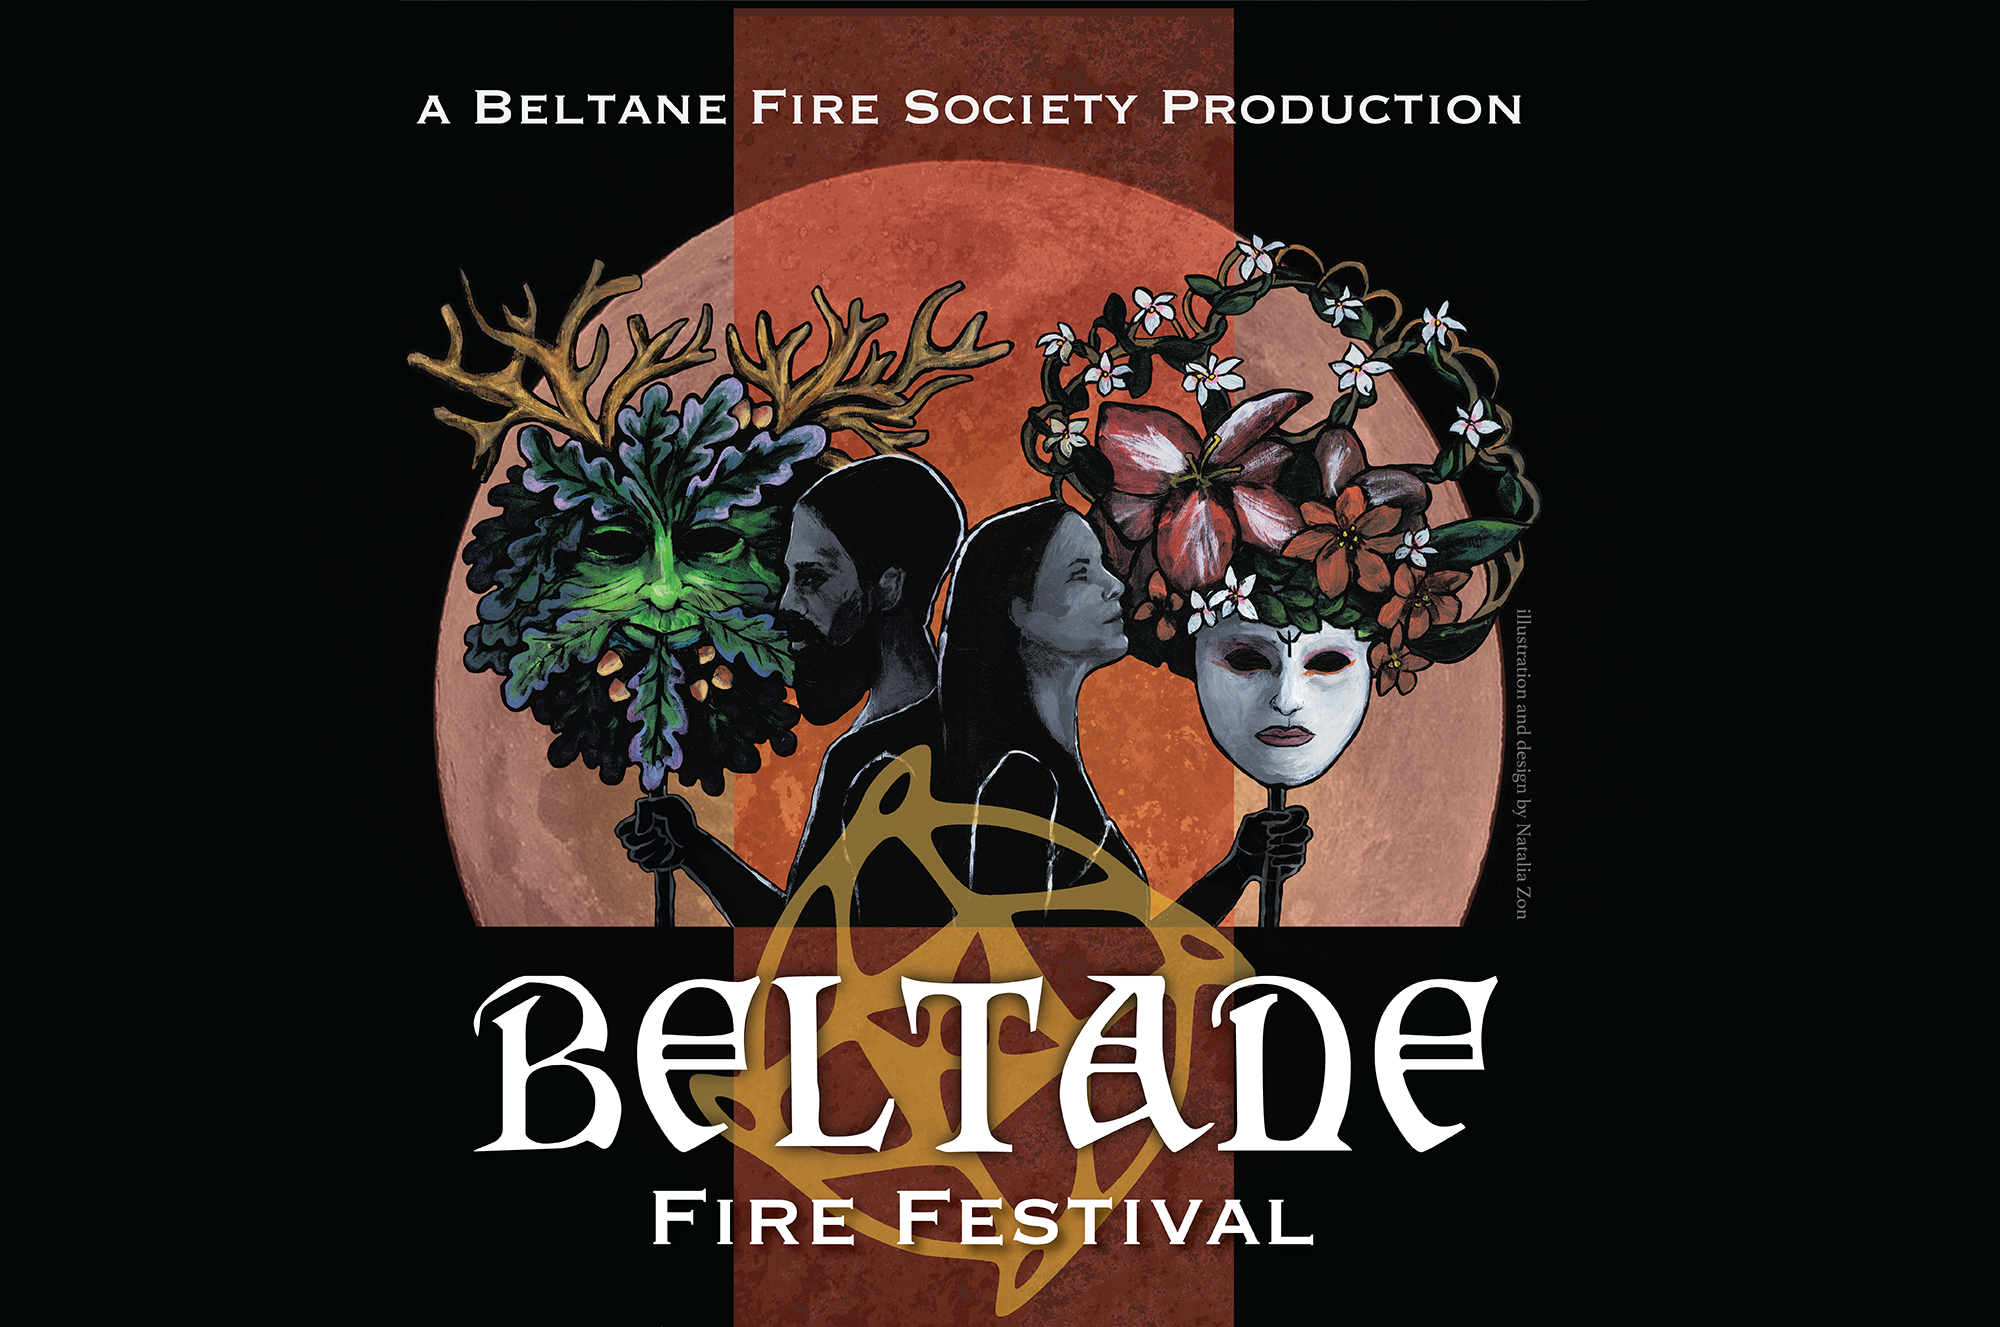 Introducing our poster design for Beltane Fire Festival